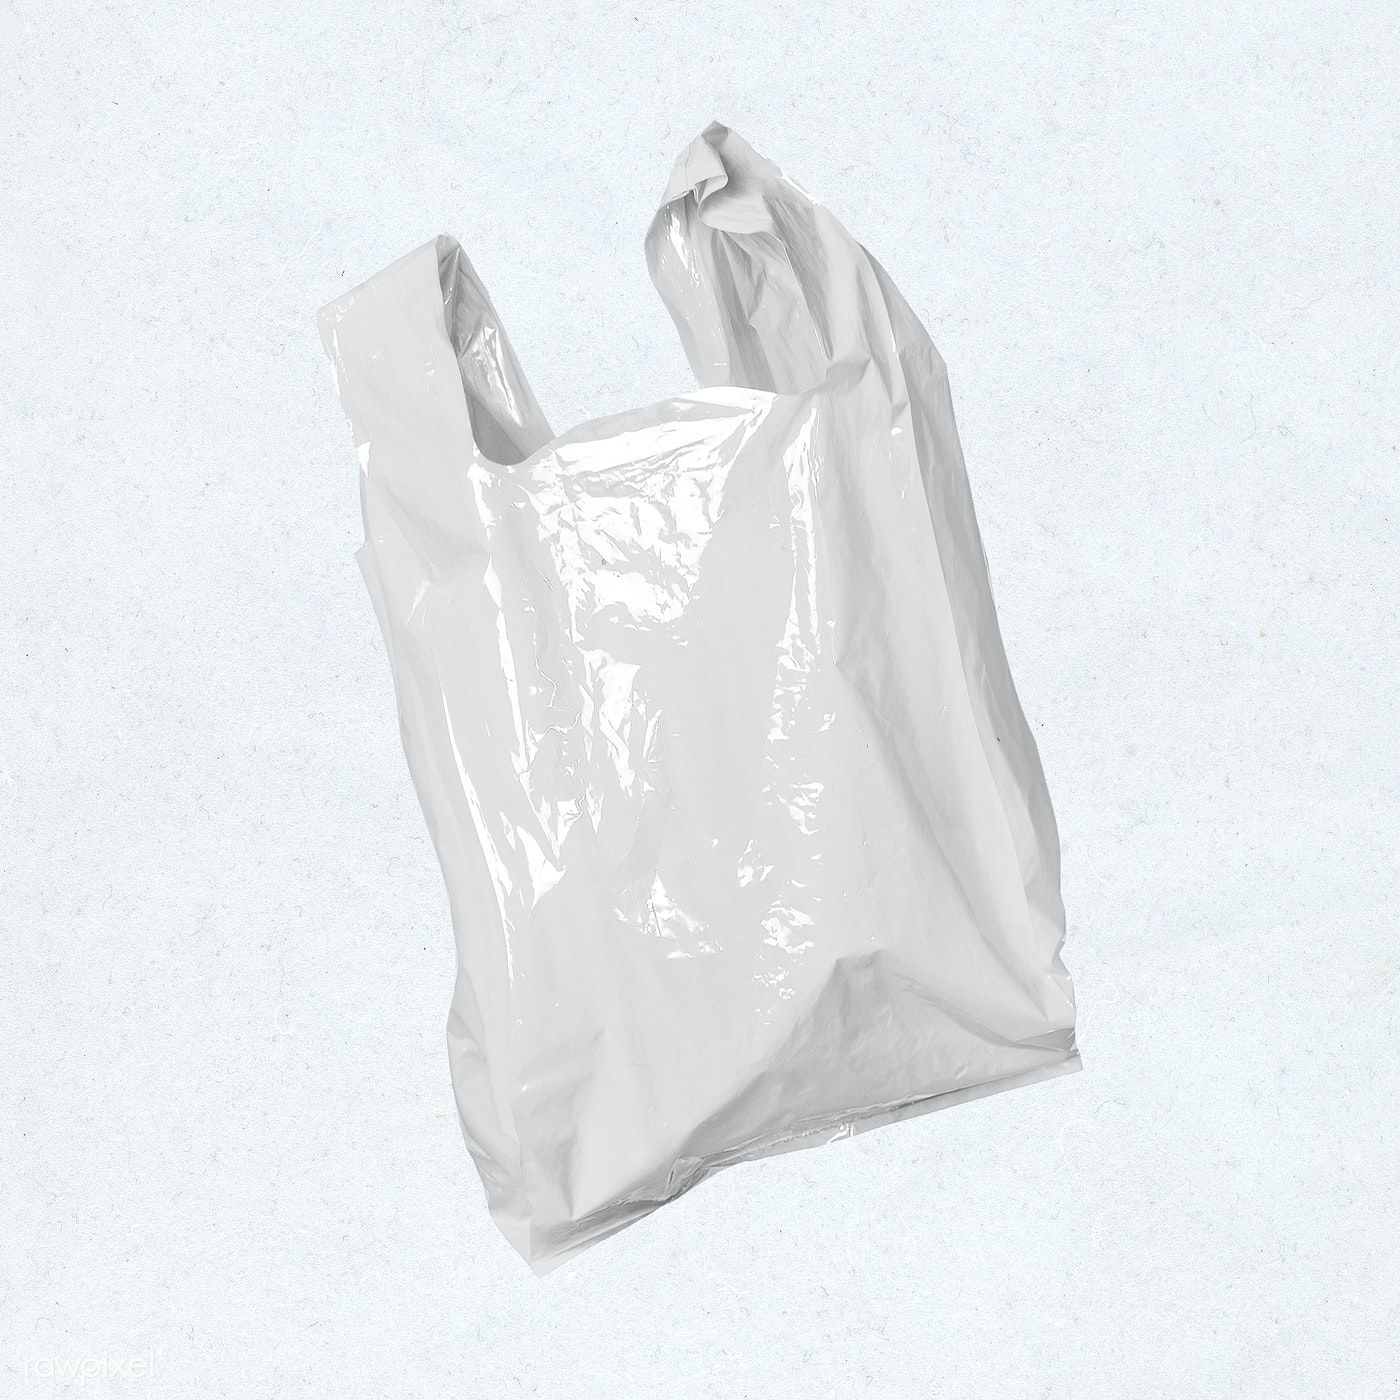 It contains two plastic shopping bag mockups wherein you can change the color, light effects, and the background of the design easily. Download Premium Psd Of Shiny White Plastic Bag Mockup 2266996 Bag Mockup Plastic Bag Bags